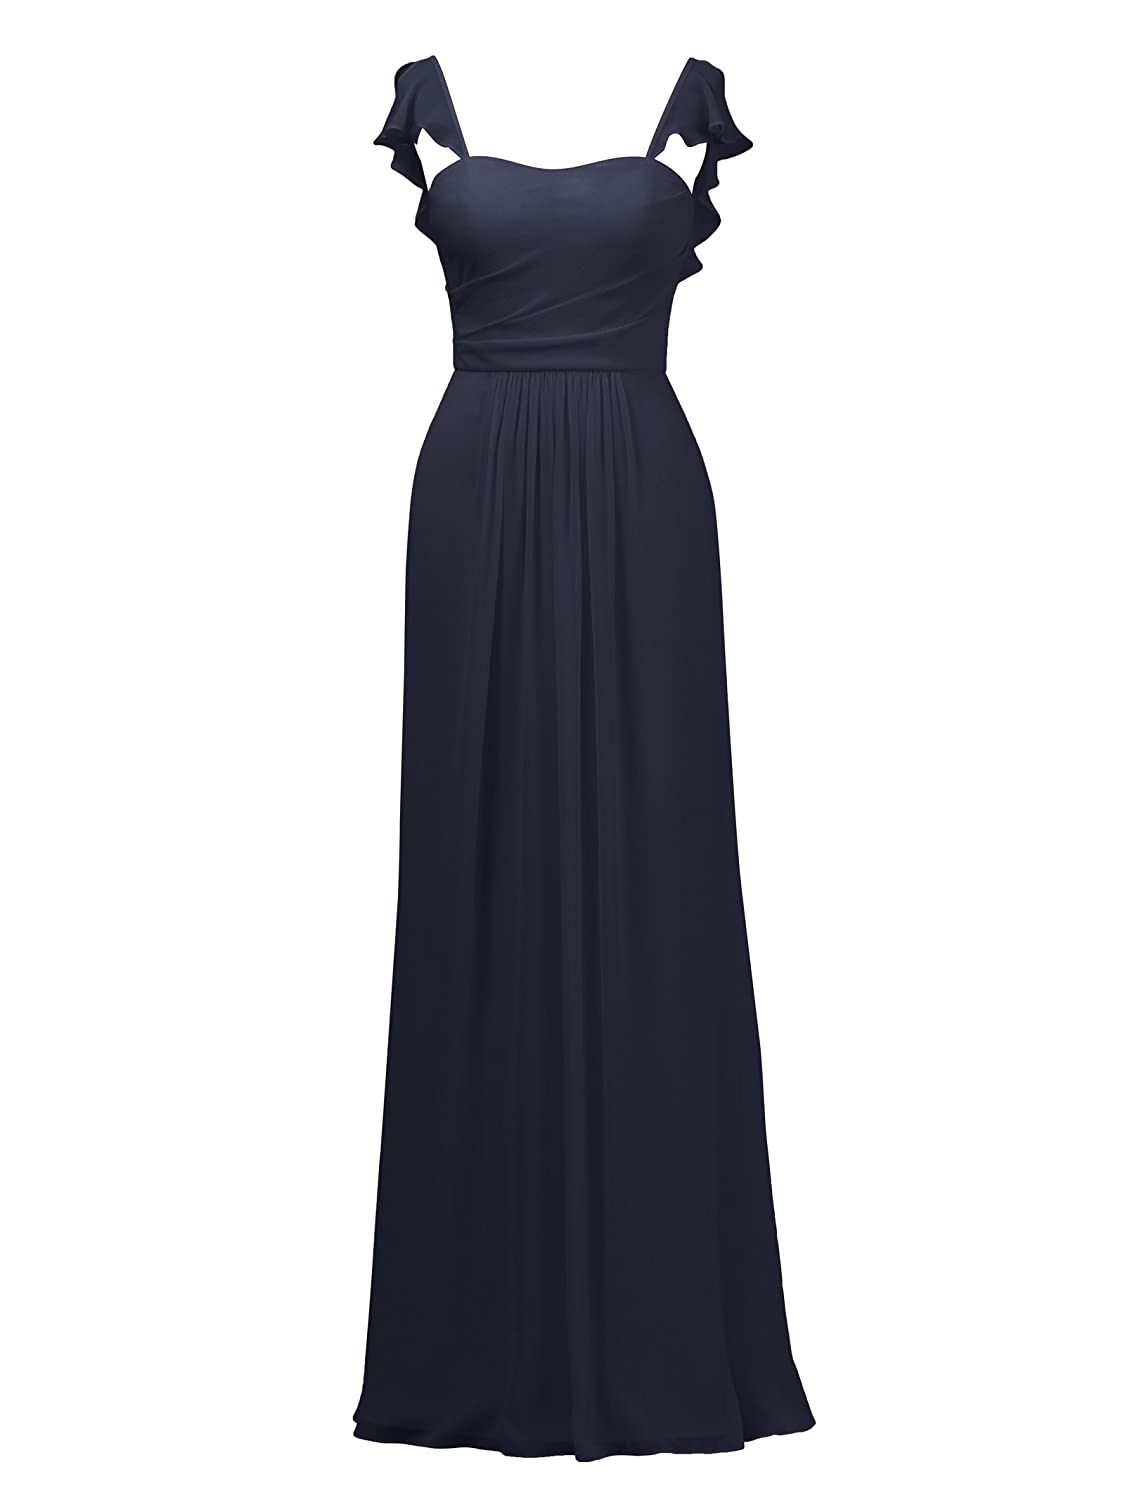 Dark Navy Alicepub Ruffles Bridesmaid Dress with Cap Sleeve Formal Evening Party Prom Gown